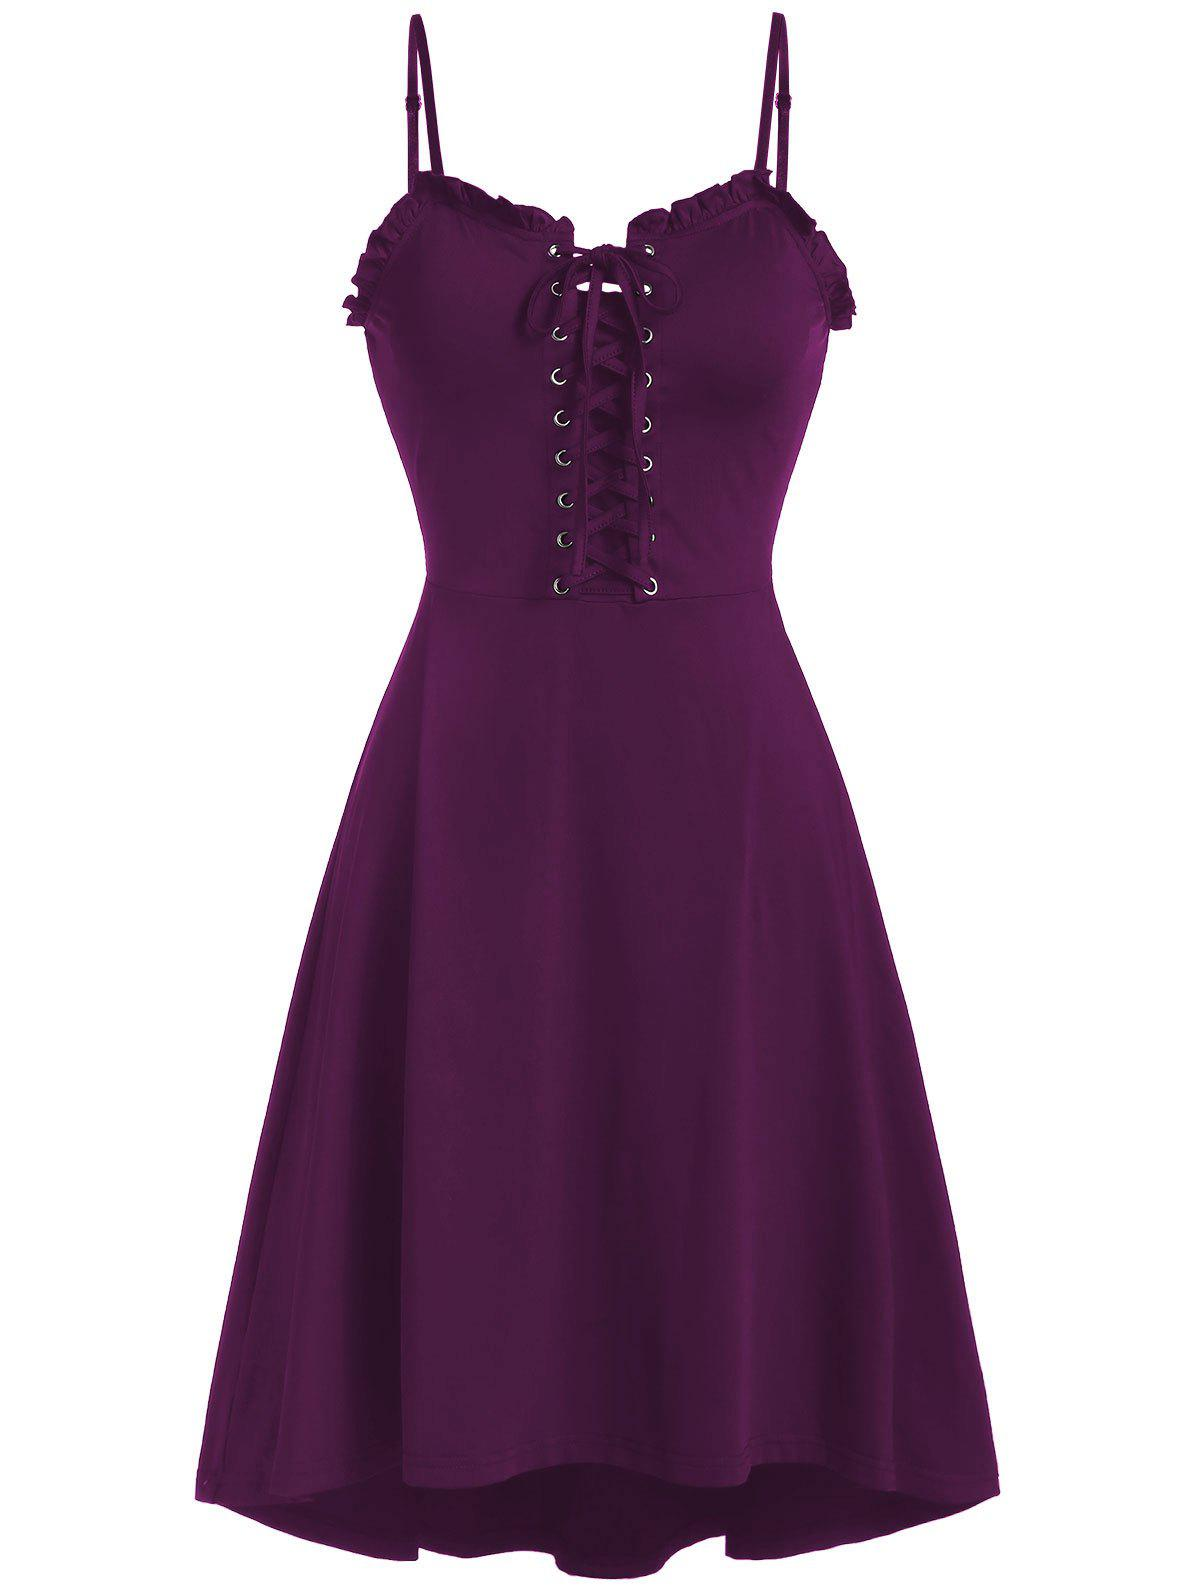 New Spaghetti Strap Lace Up Fit and Flare Dress